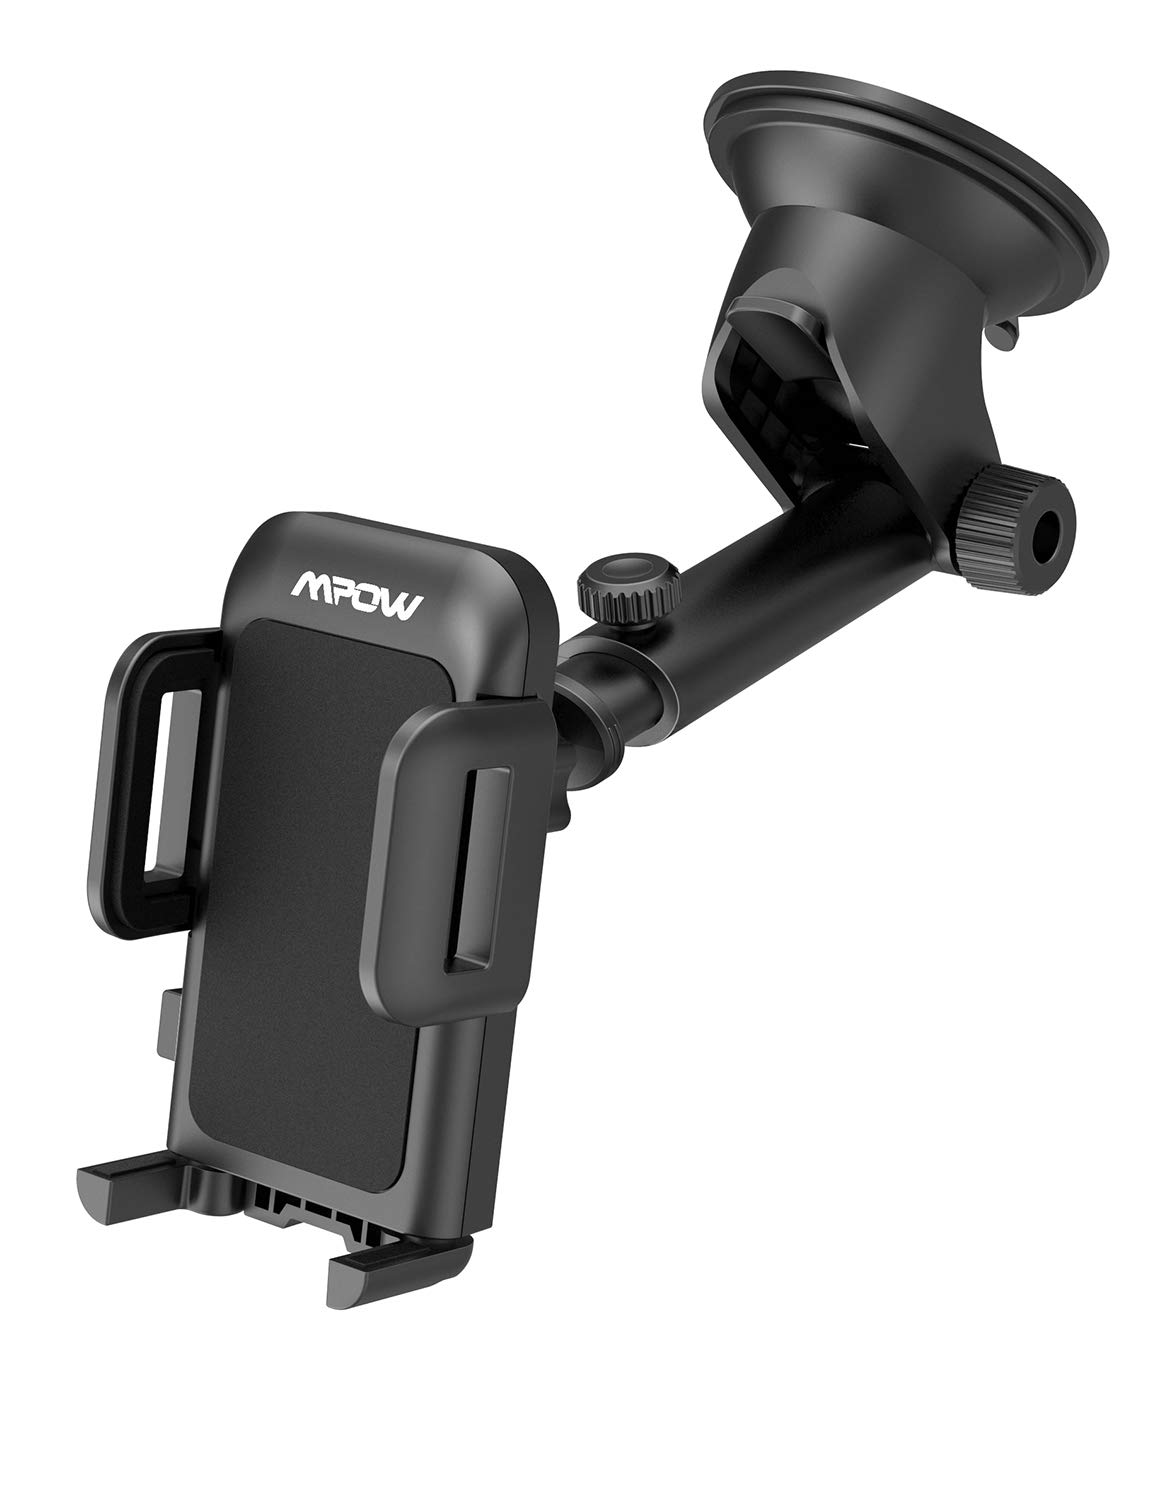 Mpow Upgrade Dashboard Car Phone Mount, Adjustable Windshield Holder Cradle with Strong Sticky Gel Pad Compatible iPhone 11 Pro/ Max/X/XS/XR/8Plus/8/7Plus/7/6Plus, Galaxy S8/9/10, Google, Black